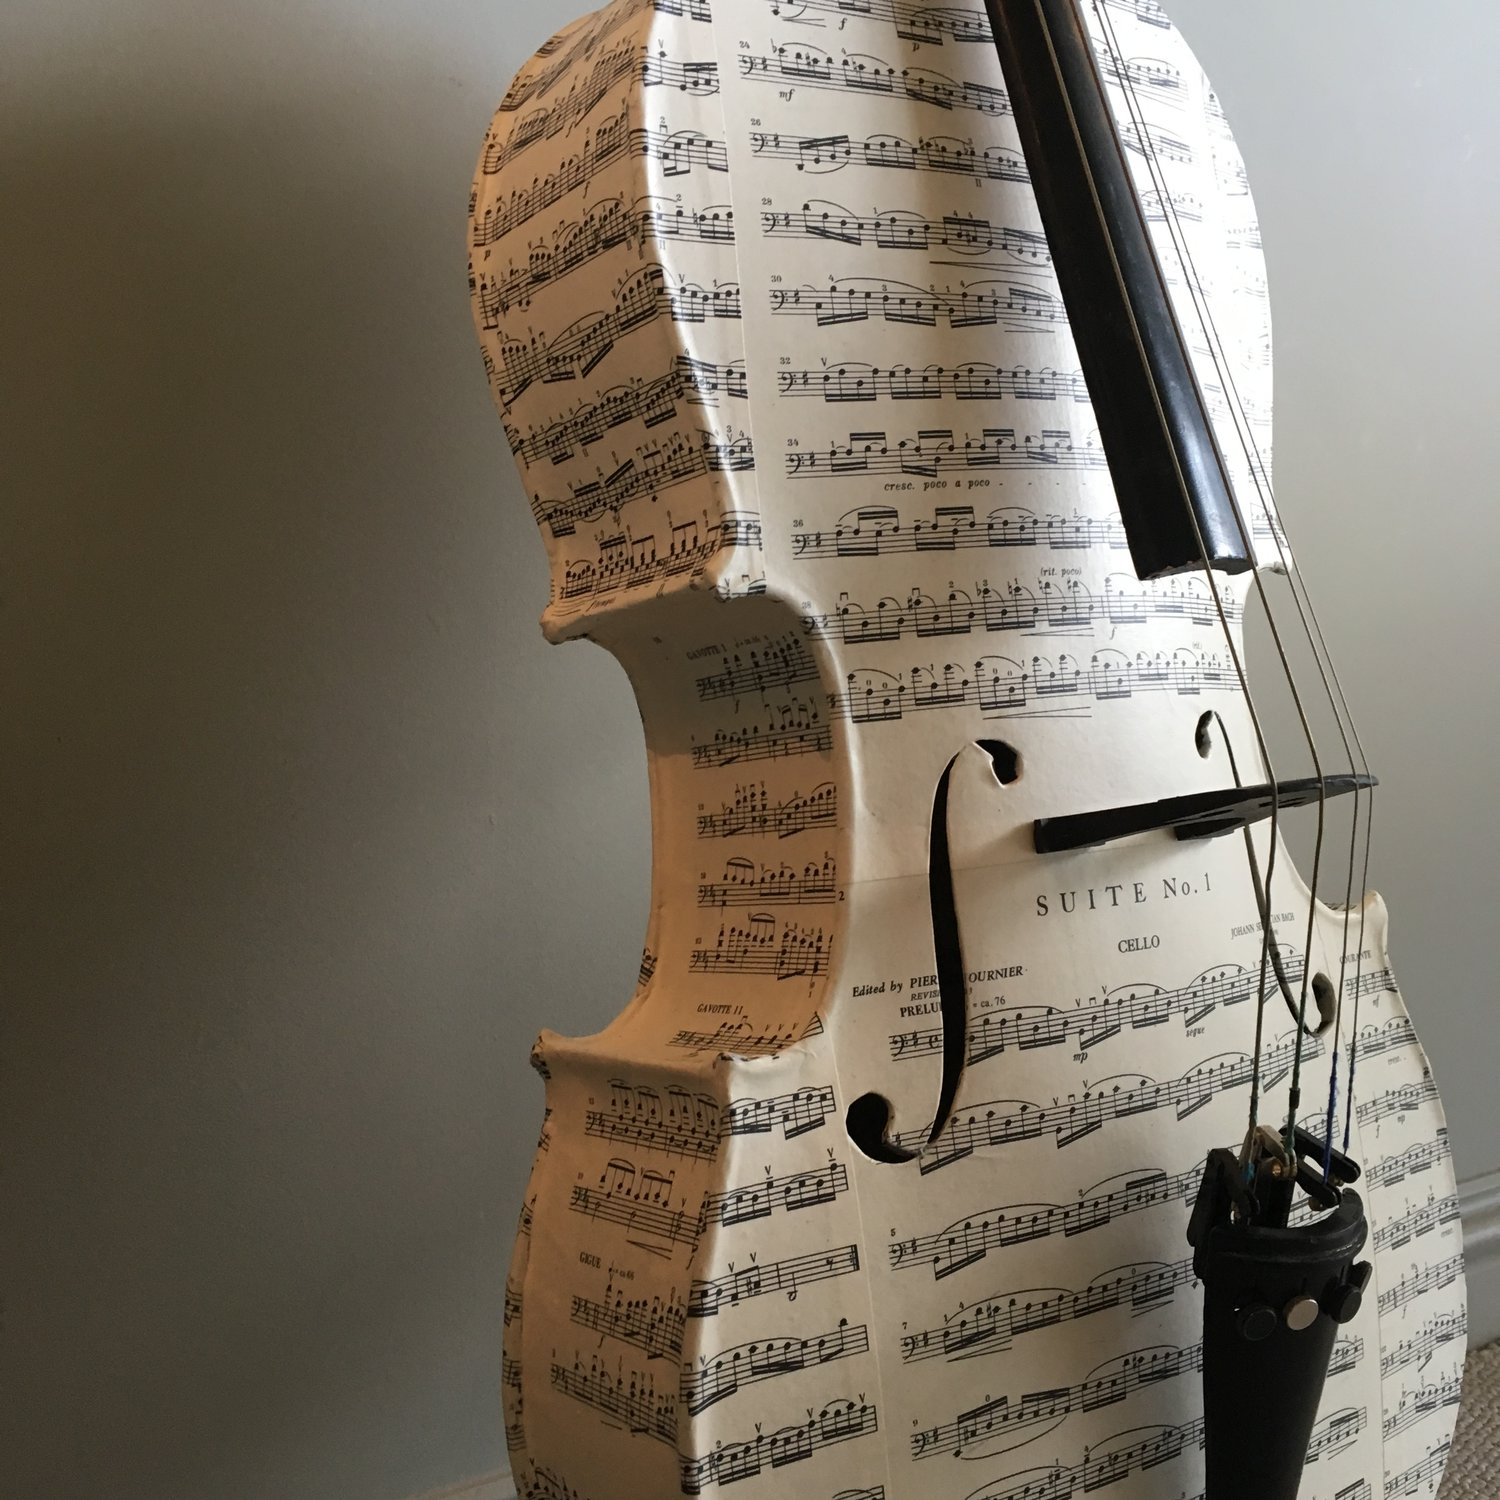 Vintage Bach Découpage Baby Cello - This Baby Cello becomes an art piece, reinvented via Découpage in pre-loved Bach sheet music. Coated in several layers dead flat varnish for durability.